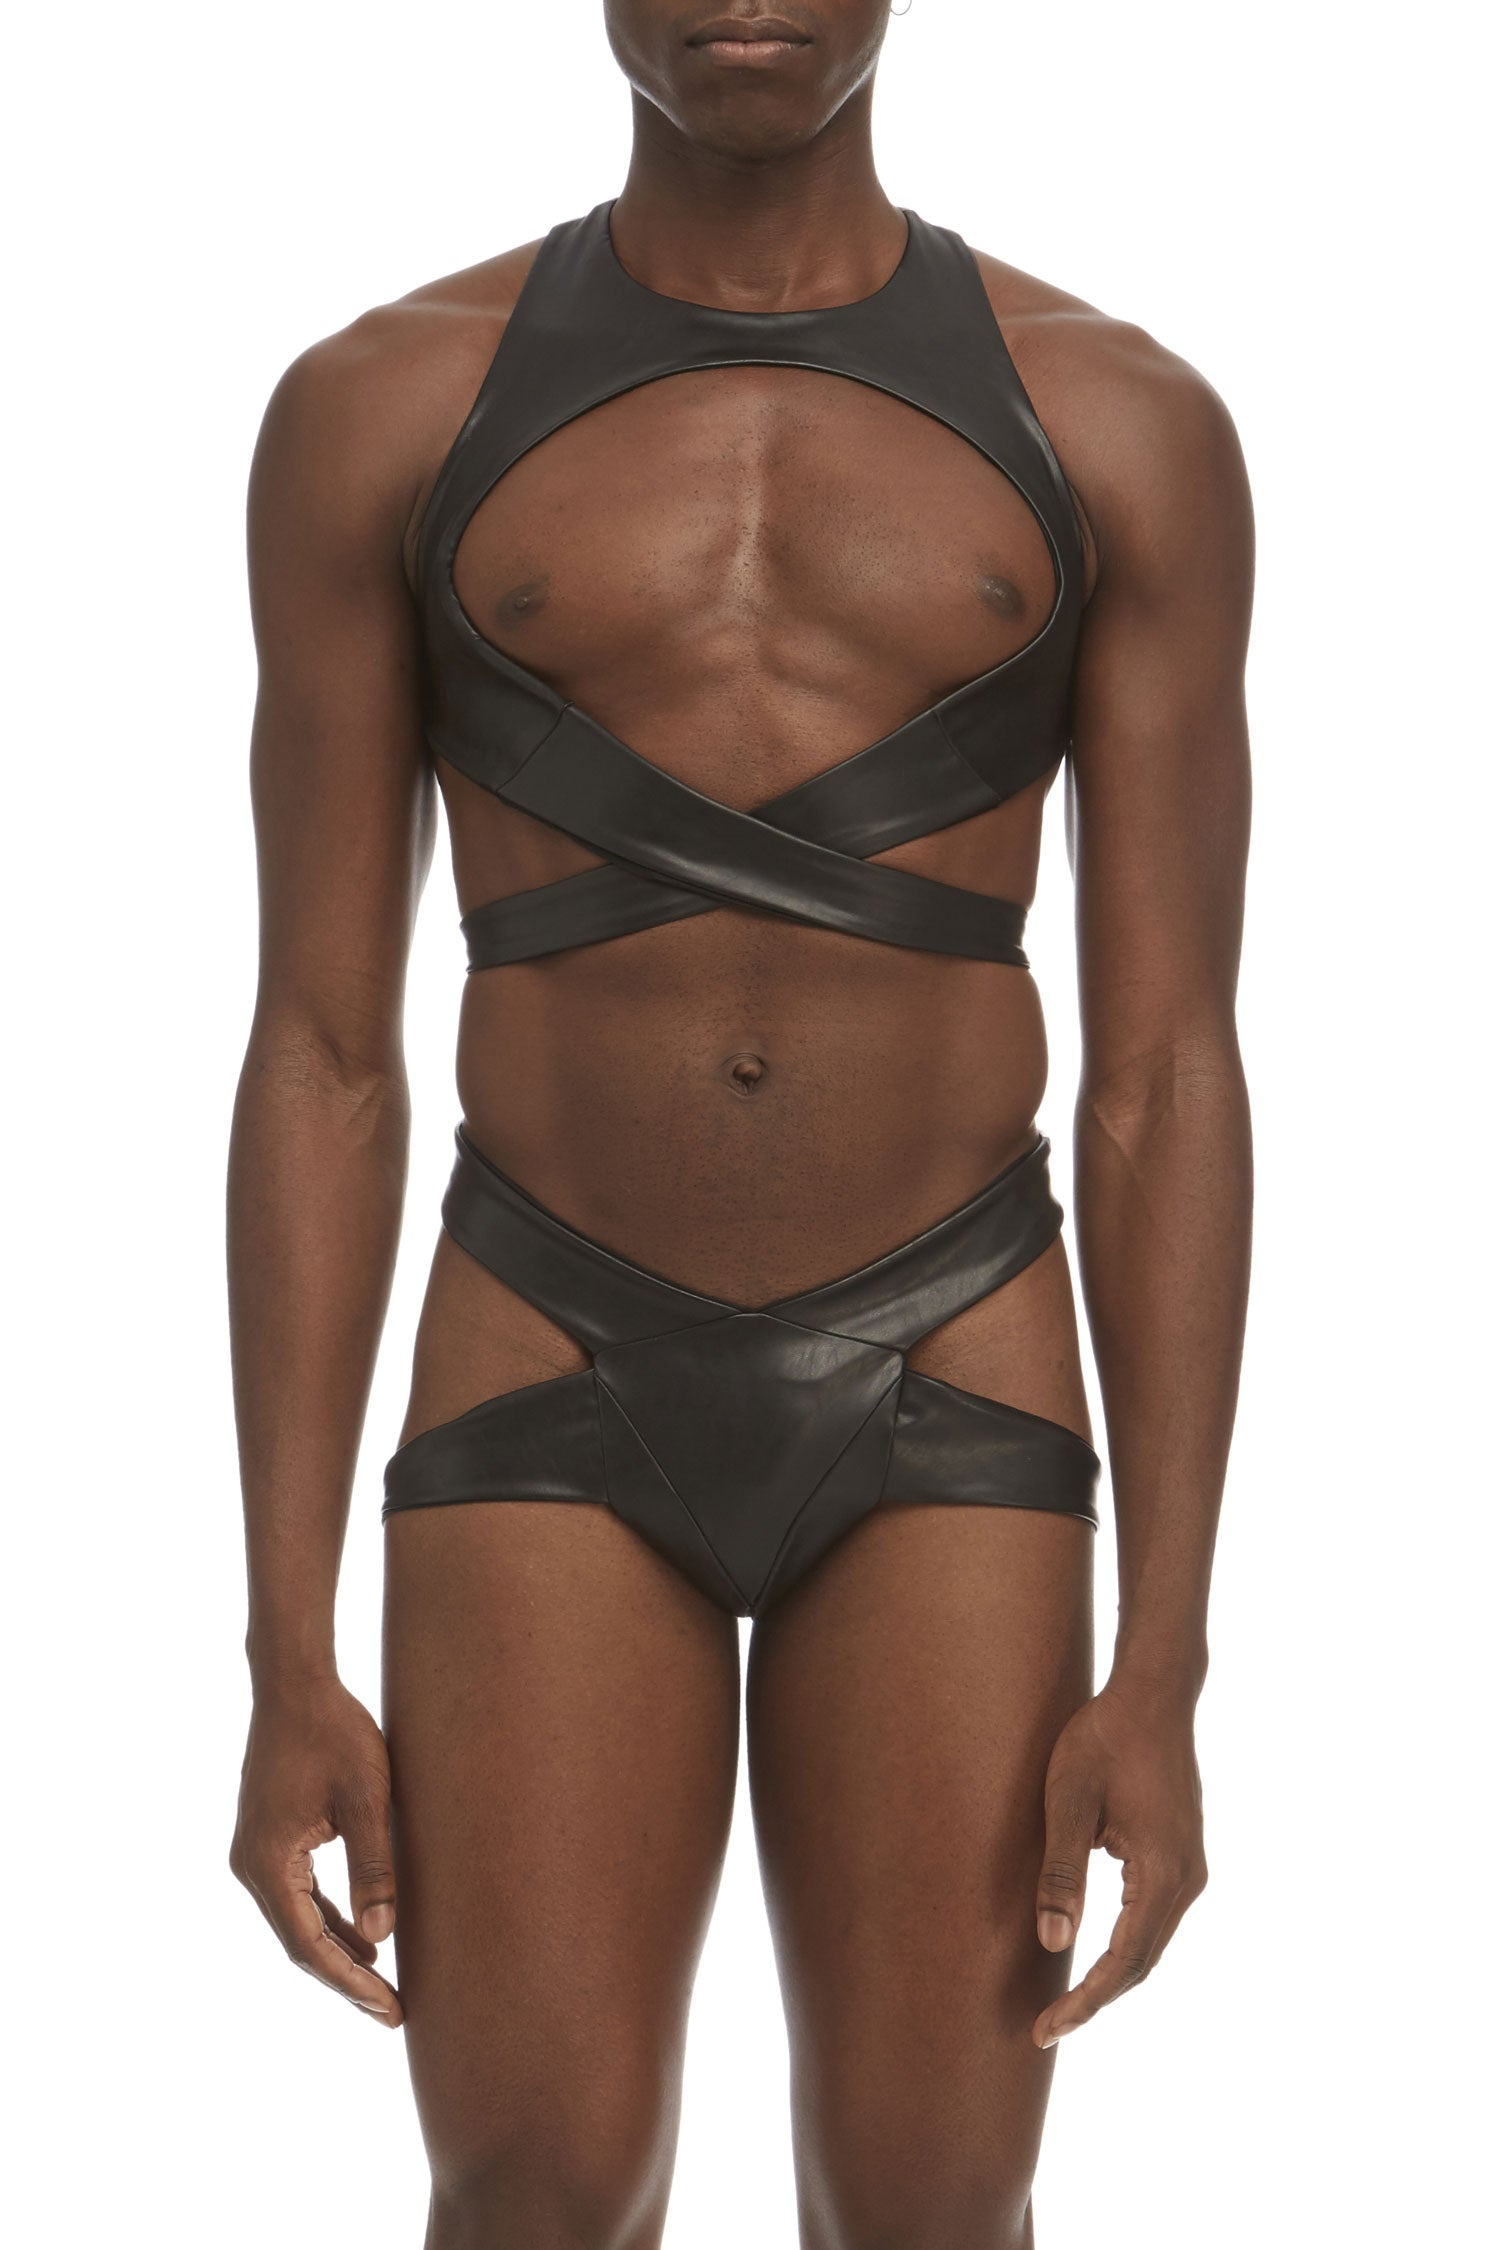 DSTM Maya mens thong in vegan leather